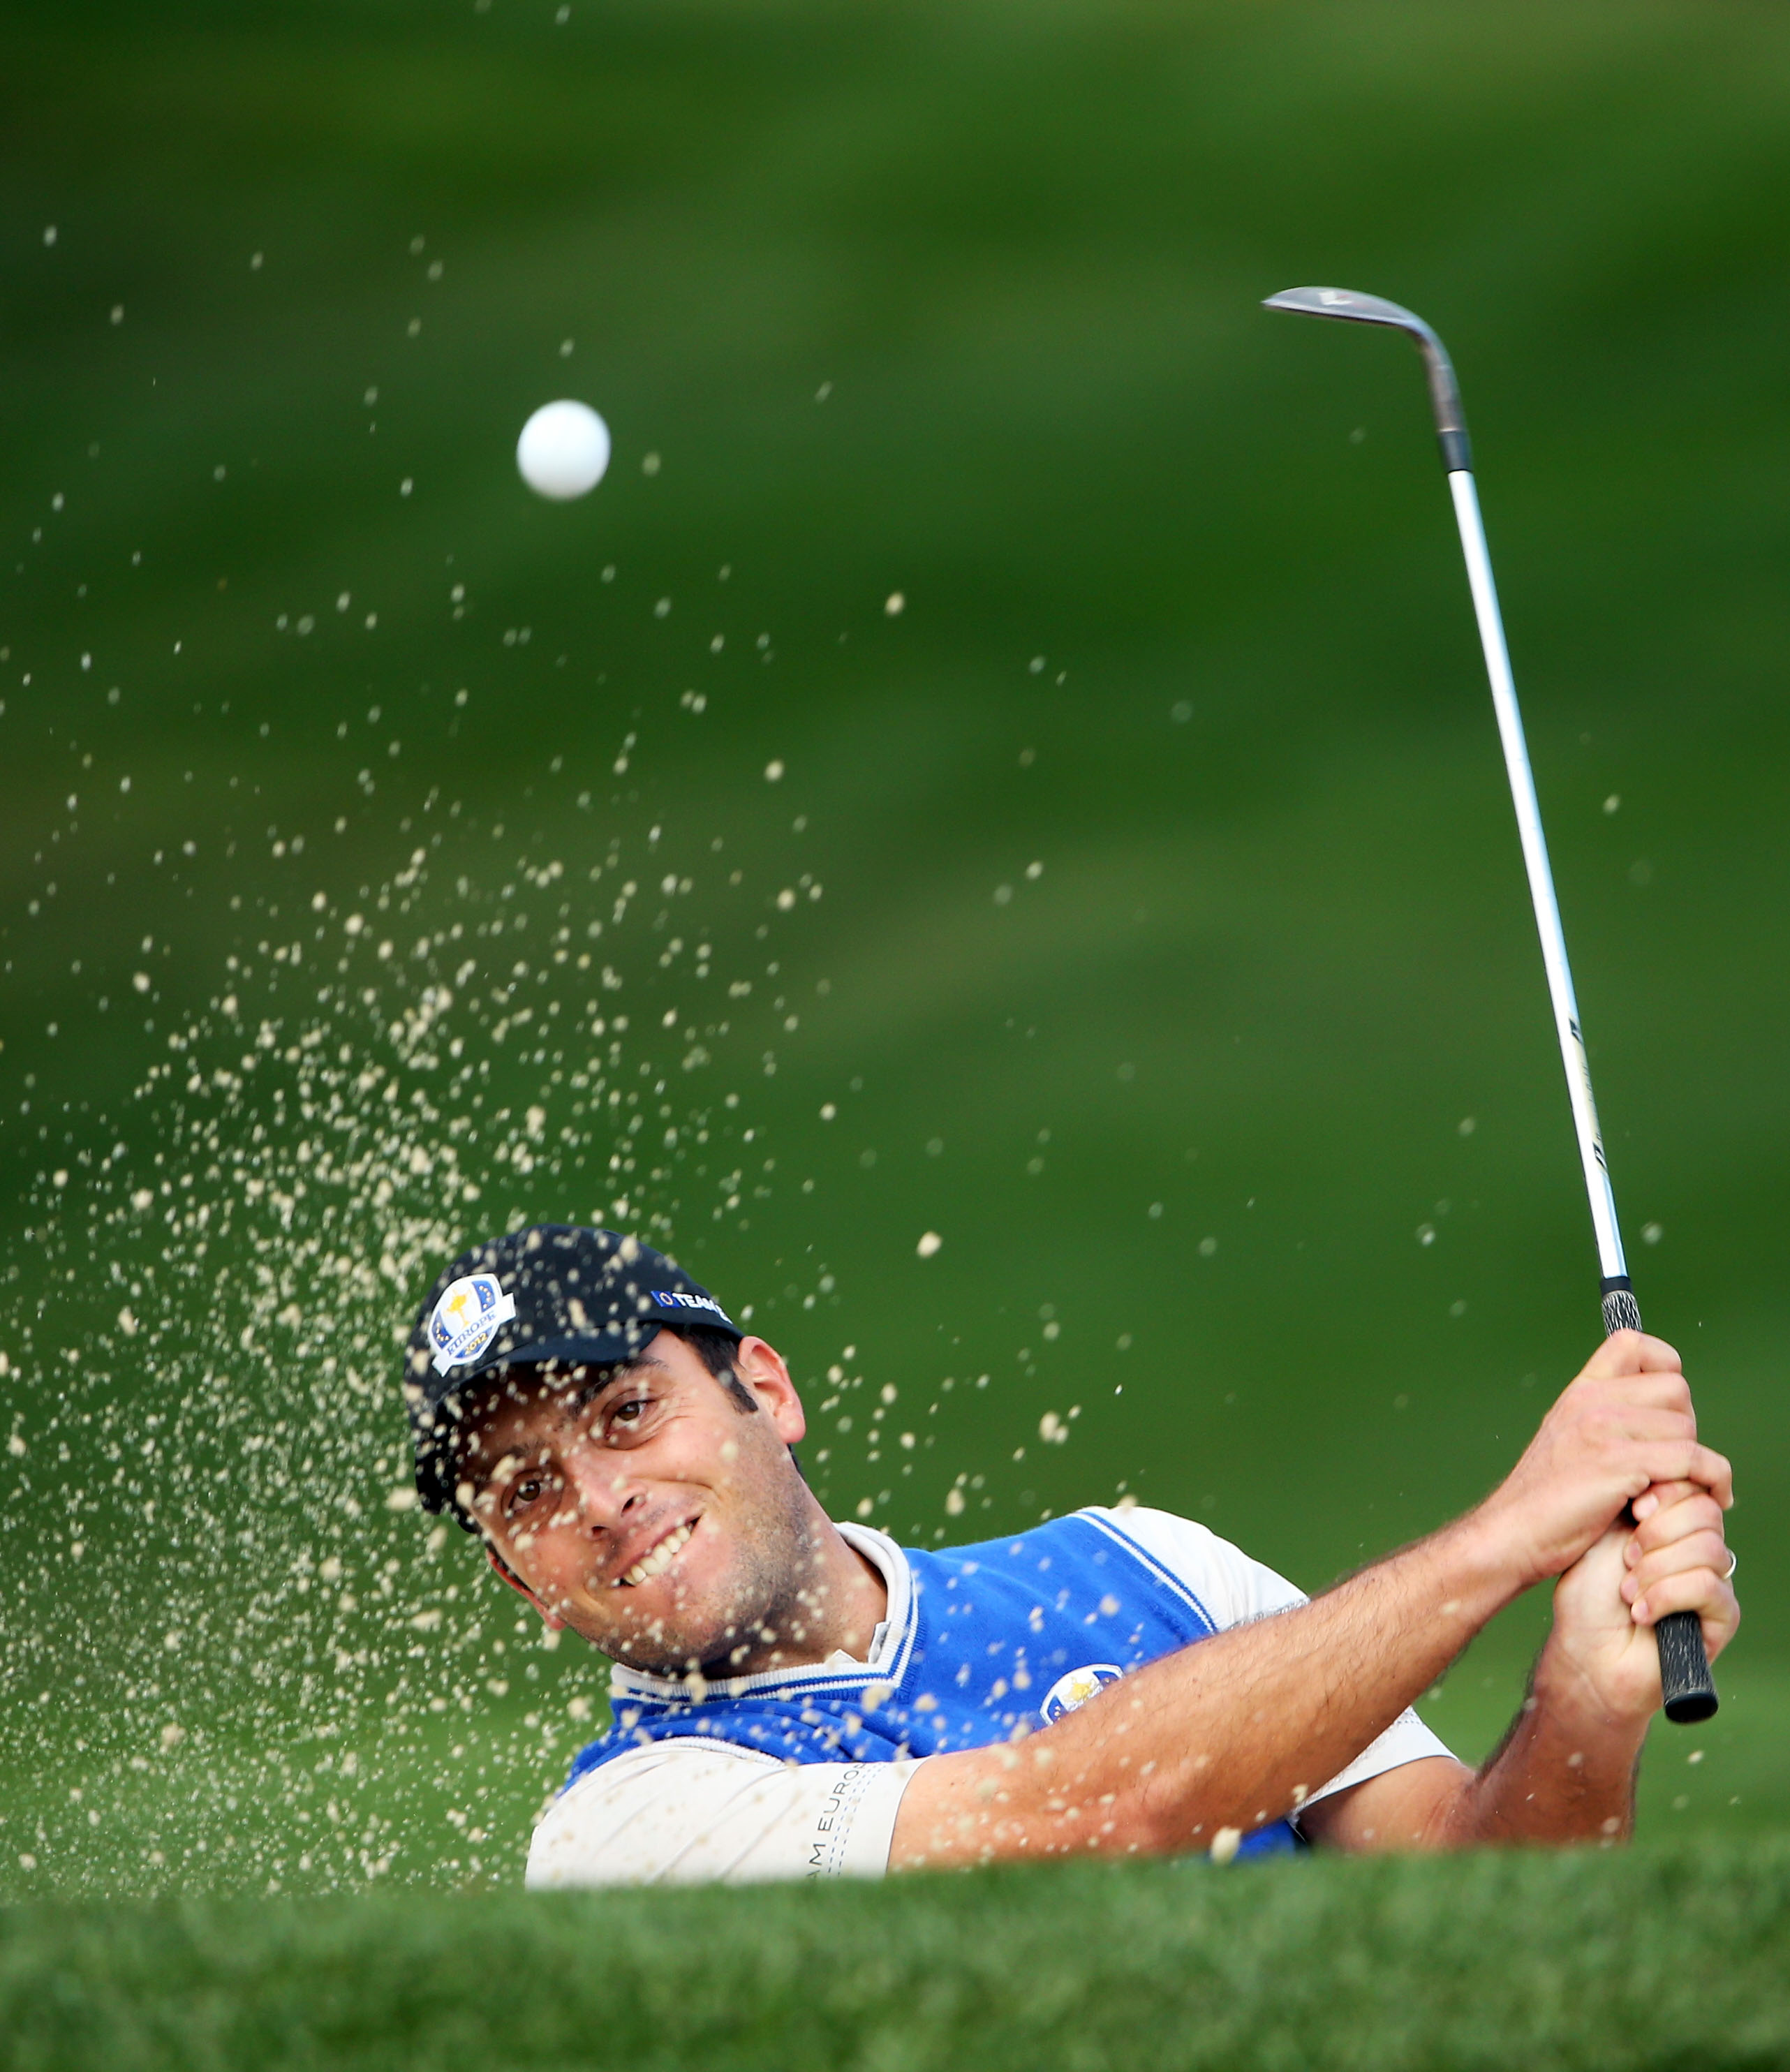 Ryder Cup - Preview Day 3